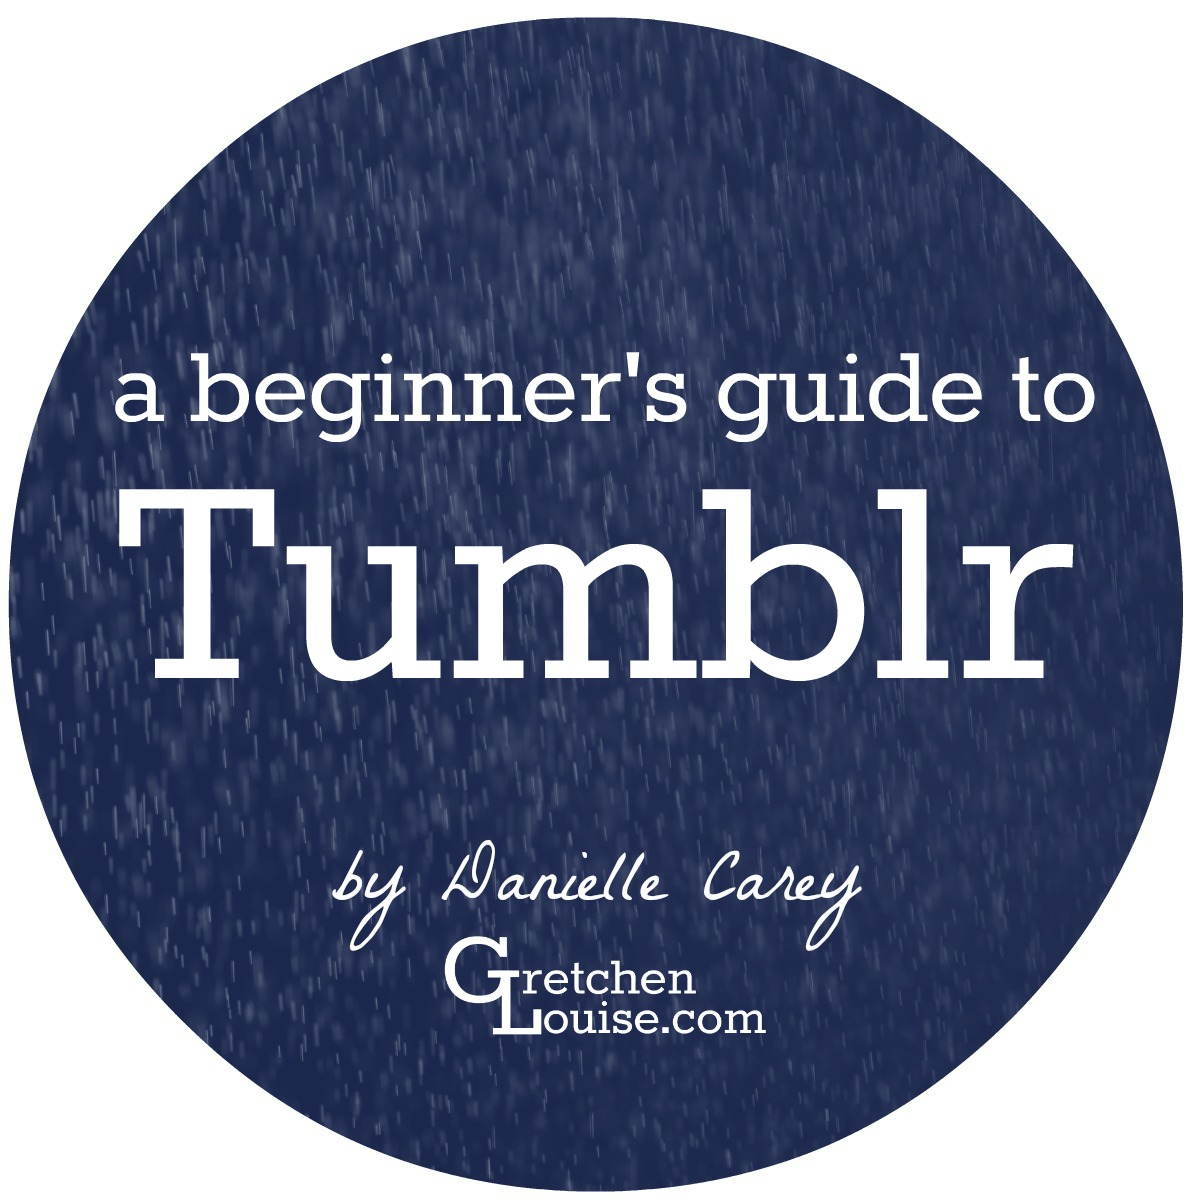 A Beginner's Guide to Tumblr